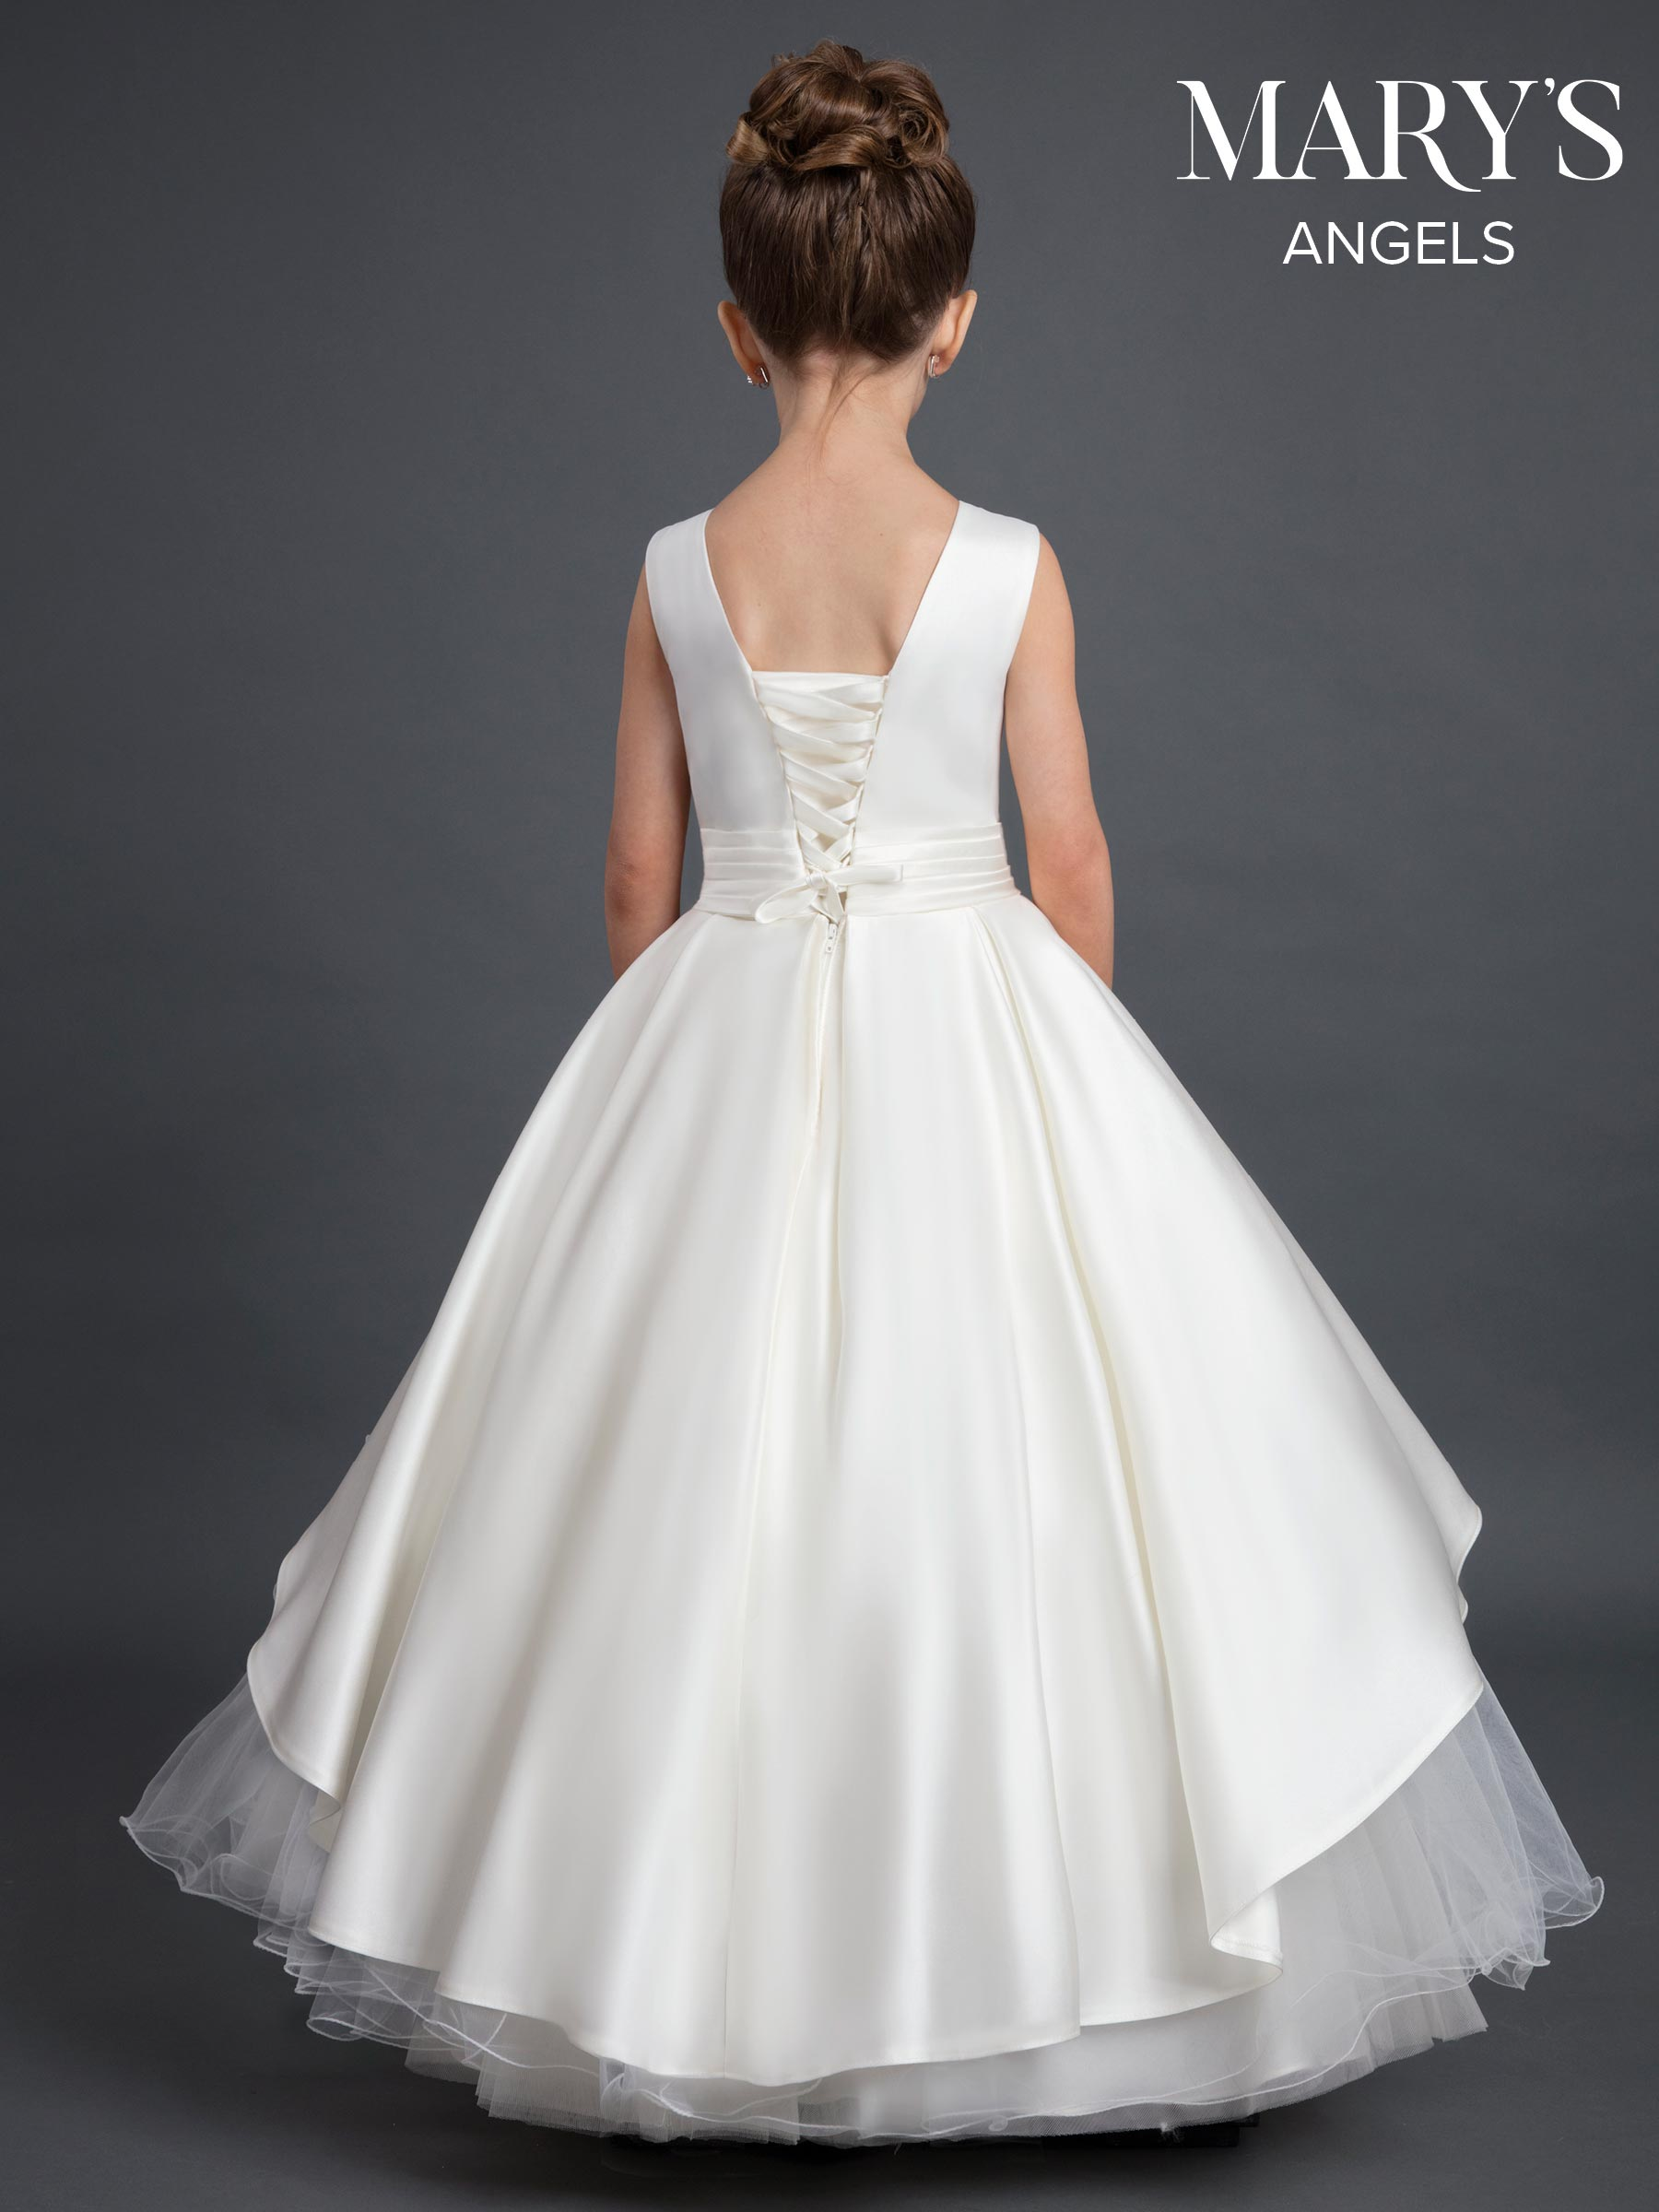 Angel Flower Girl Dresses   Mary's Angels   Style - MB9028